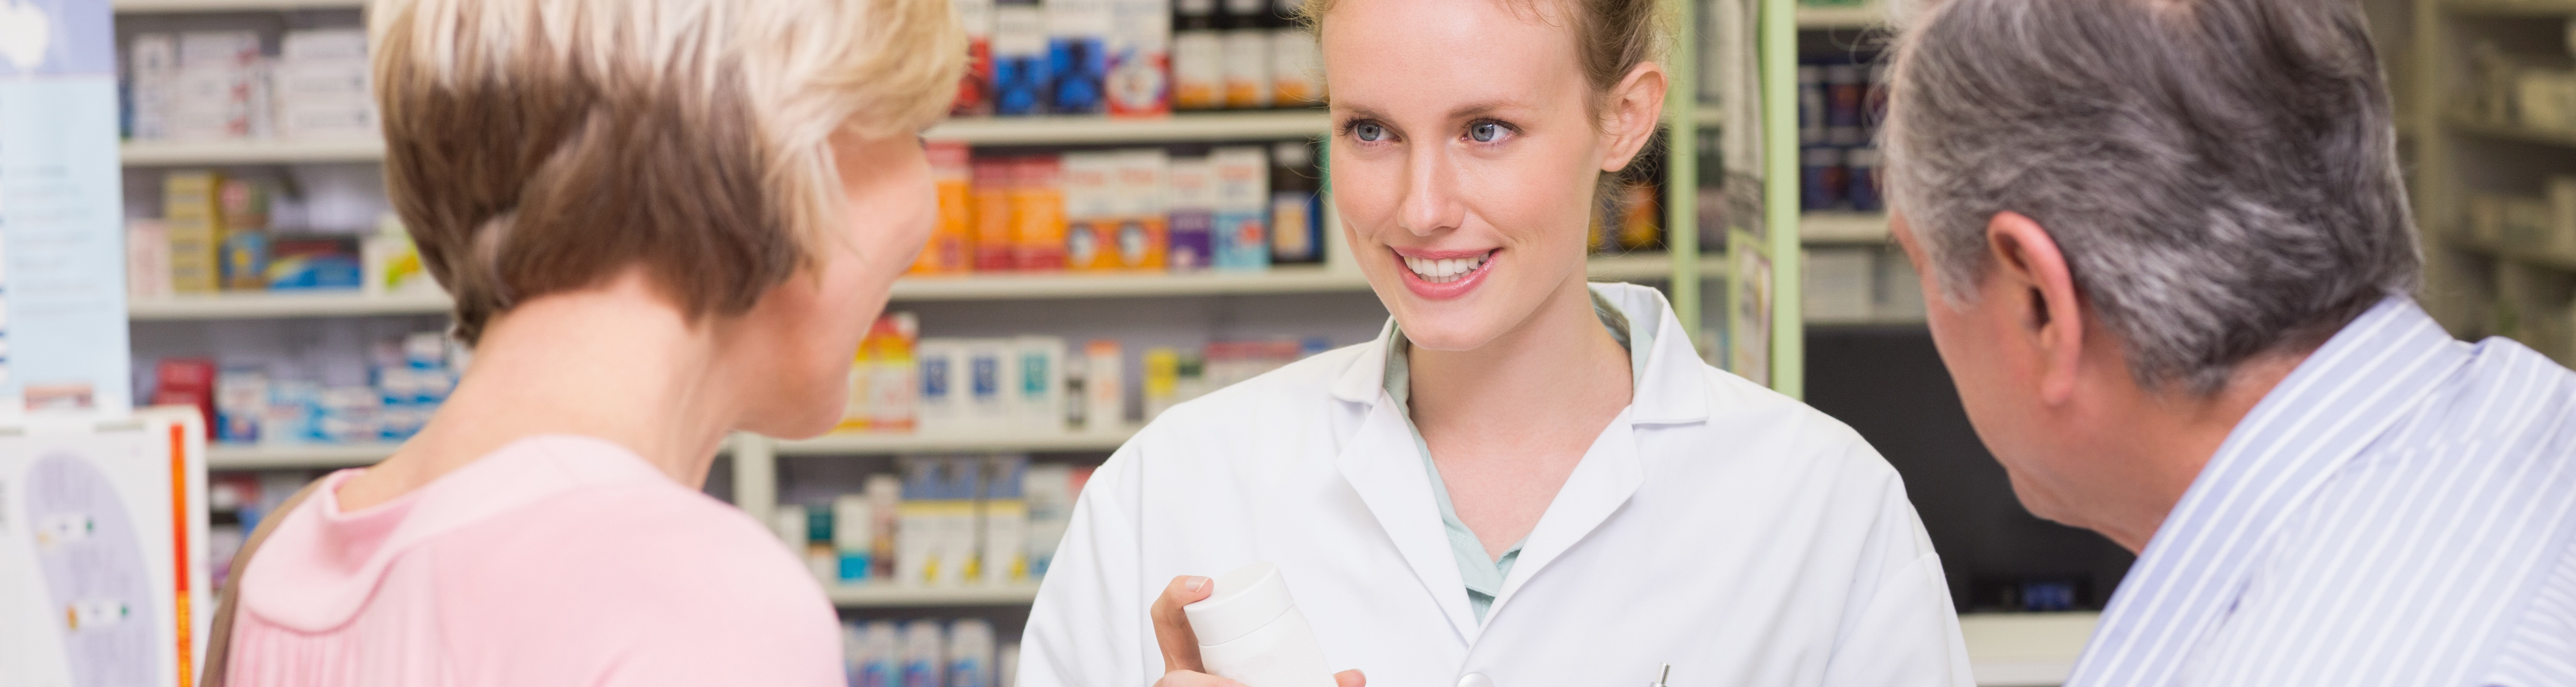 Pharmacist assisting customers